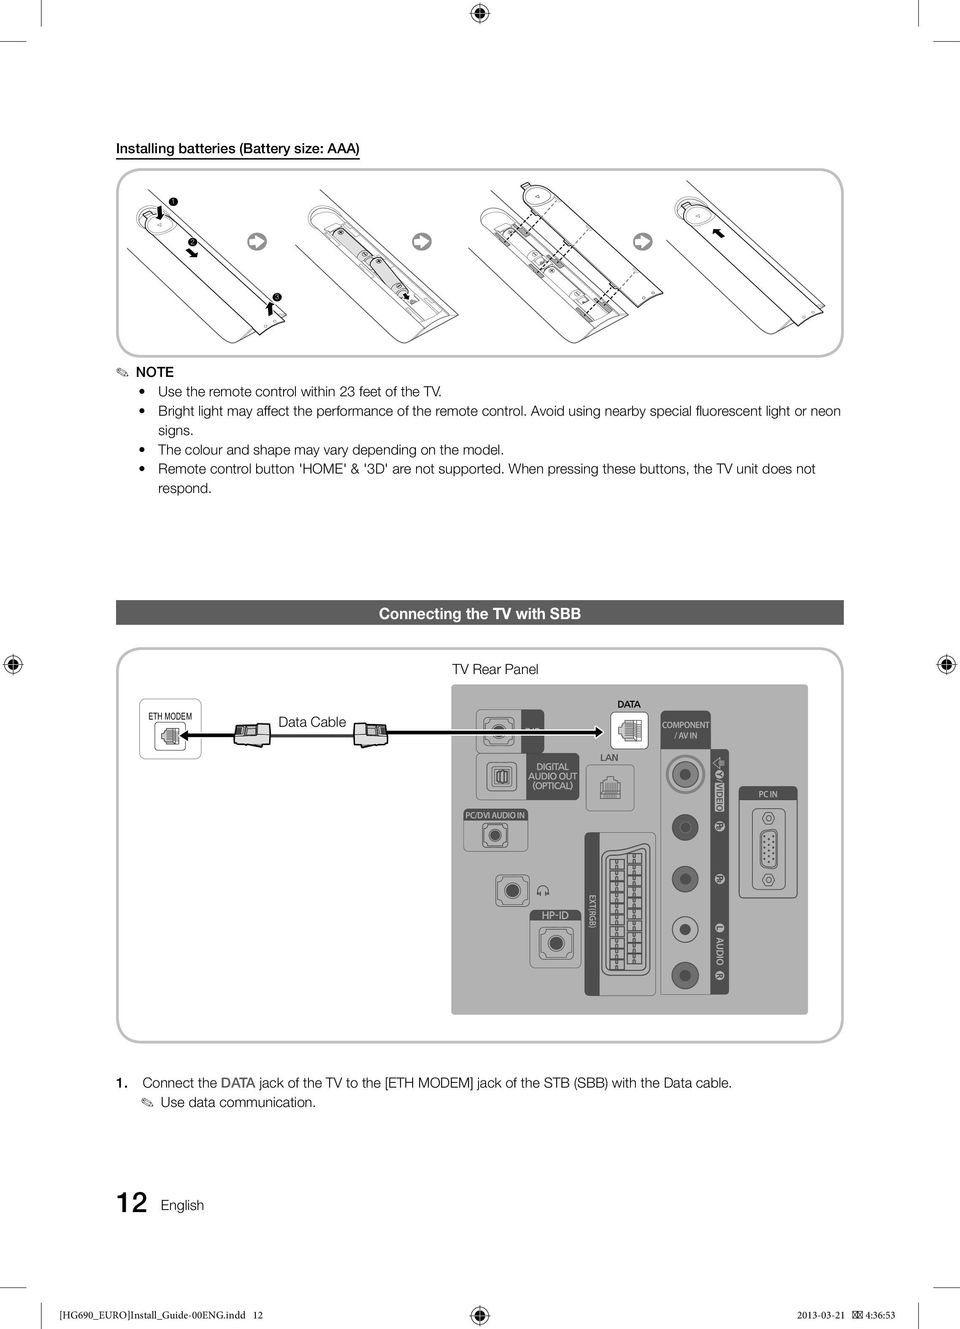 Led Tv Installation Manual Imagine The Possibilities Pdf Visio Datajack Wiring Diagram When Pressing These Buttons Unit Does Not Respond